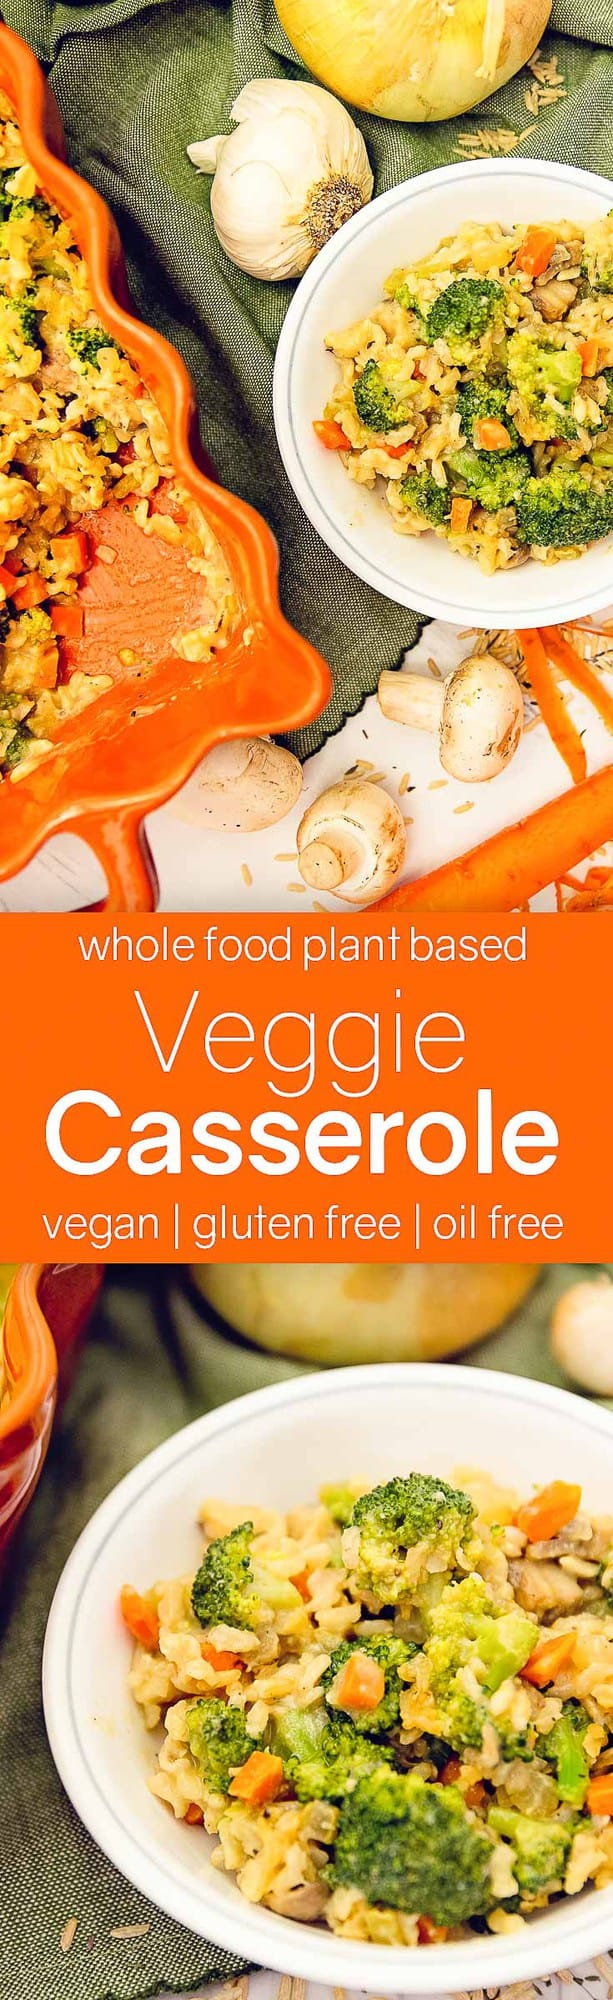 veggie casserole, vegetable casserole, casserole, whole food plant based casserole, whole food plant based, plant based casserole, plant based, vegetarian casserole, vegetarian, vegan casserole, vegan, no oil, oil free, refined sugar free, no refined sugar, broccoli casserole, broccoli, carrots, rice casserole, rice, brown rice, healthy casserole, healthy, dinner, sides, side, side dish, gluten free casserole, gluten free, fast casserole, fast, easy casserole, easy, 30 minute casserole, 30 minutes, quick casserole, quick, meal, casserole meal, mushrooms, creamy casserole